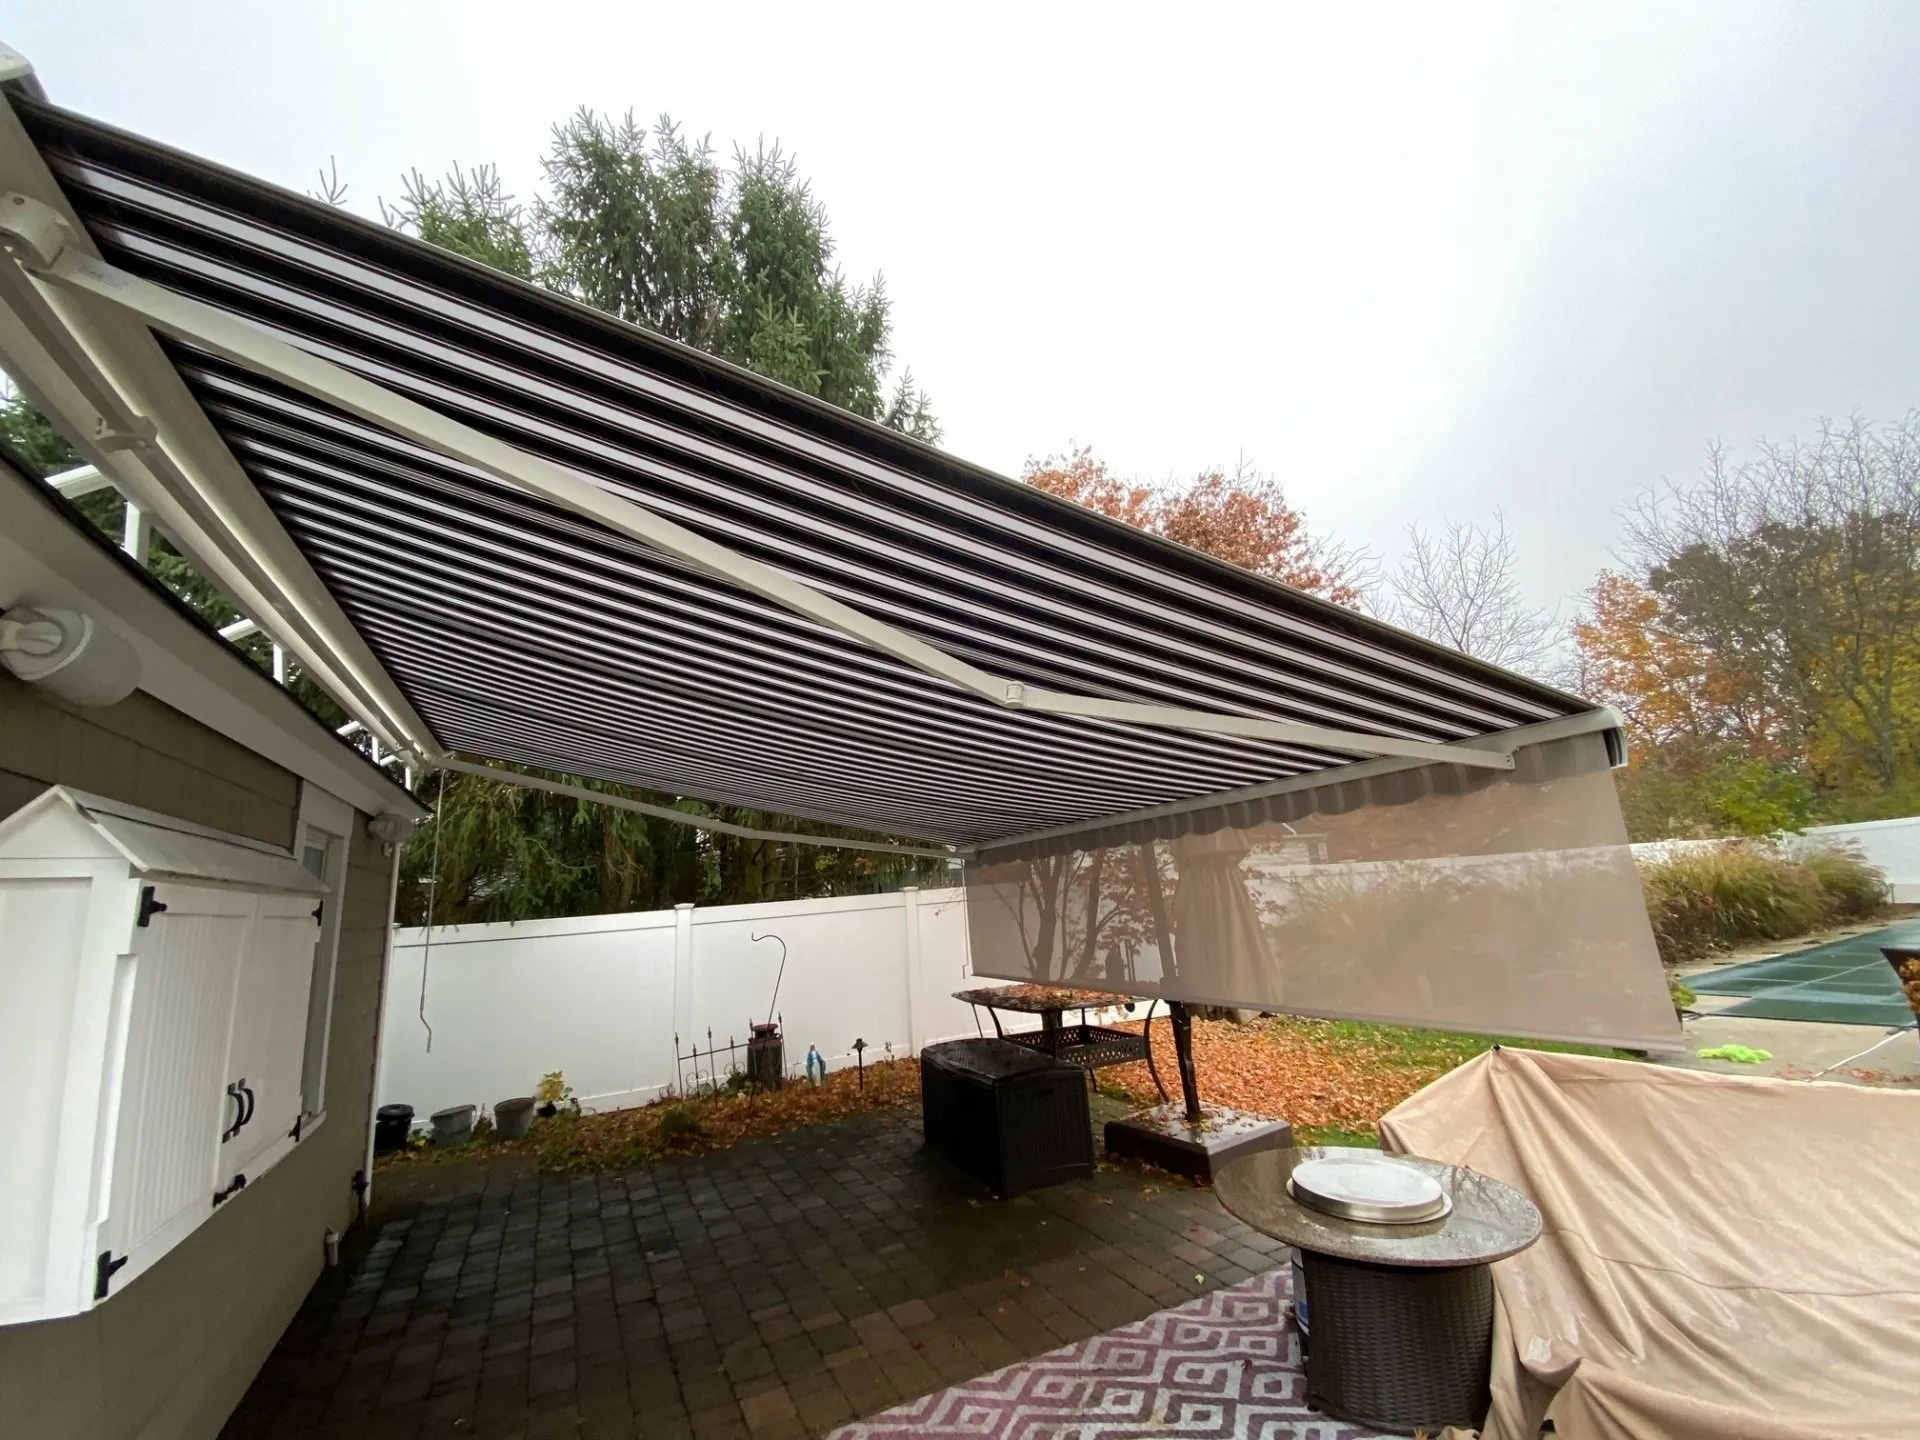 Retractable Awning For Deck or Patio | Franklin Lakes NJ